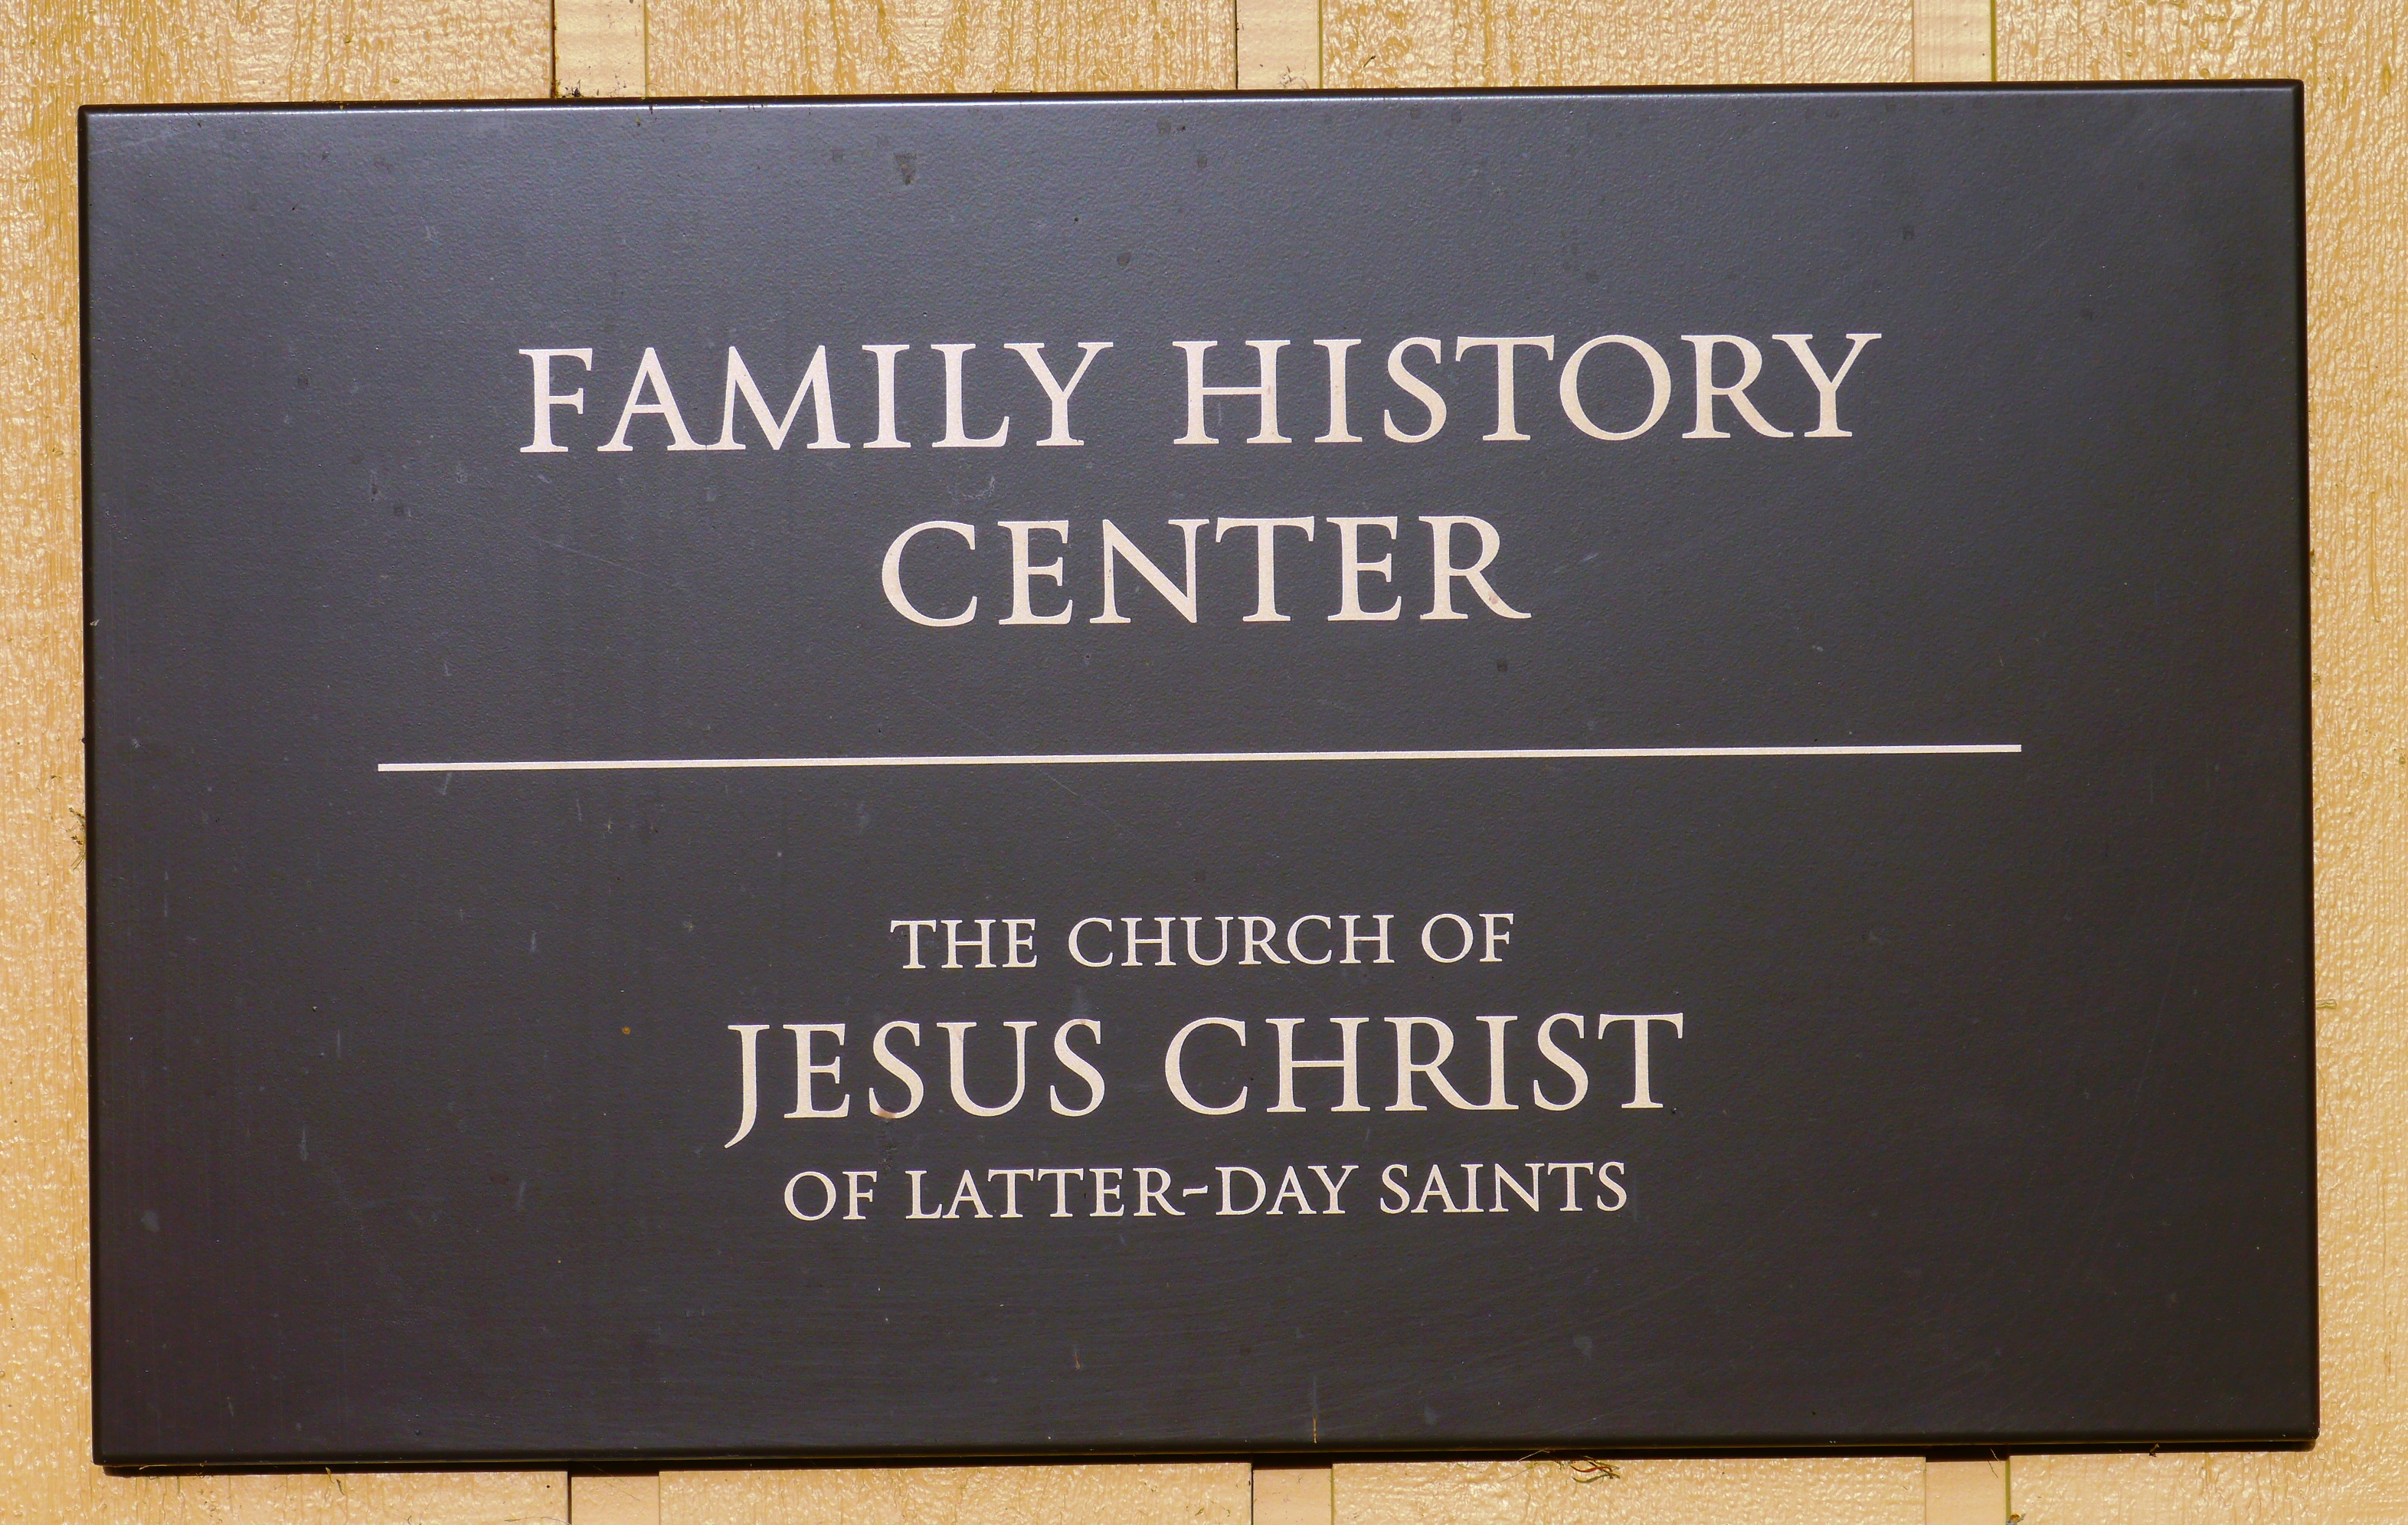 Family History Center (LDS Church) - Wikipedia